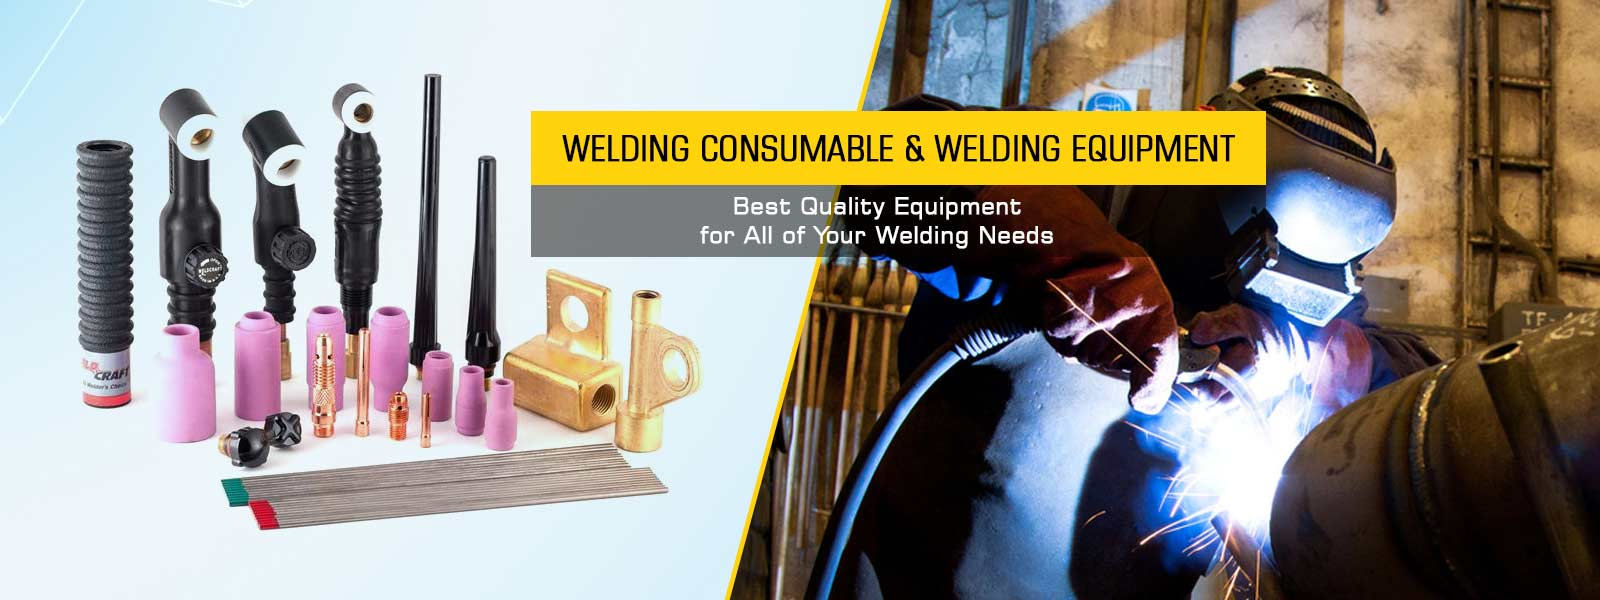 Welding Equipments And Consumable Manufacturer, Exporters and Suppliers in Chandigarh